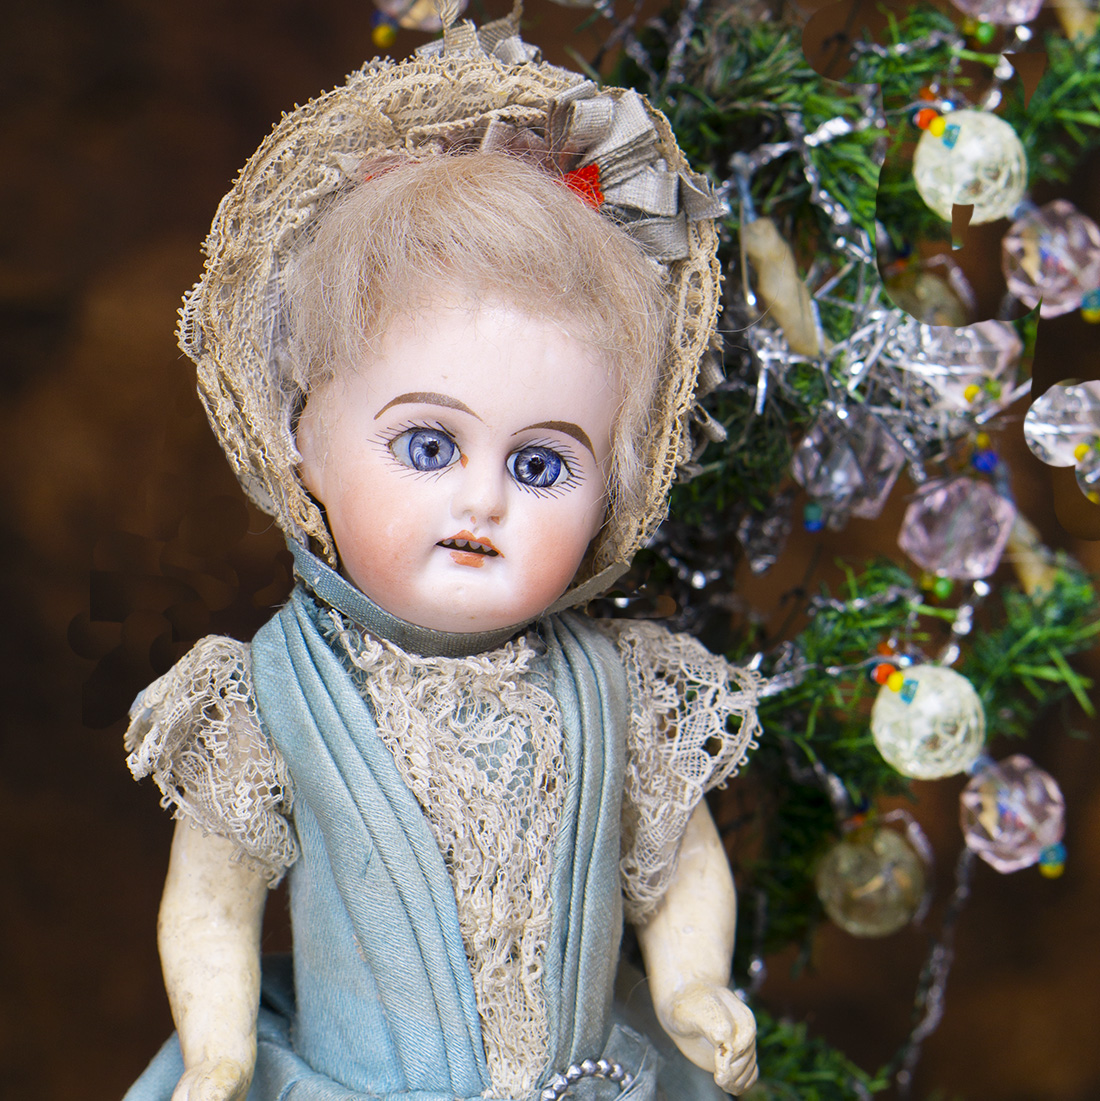 8in Mignonette doll